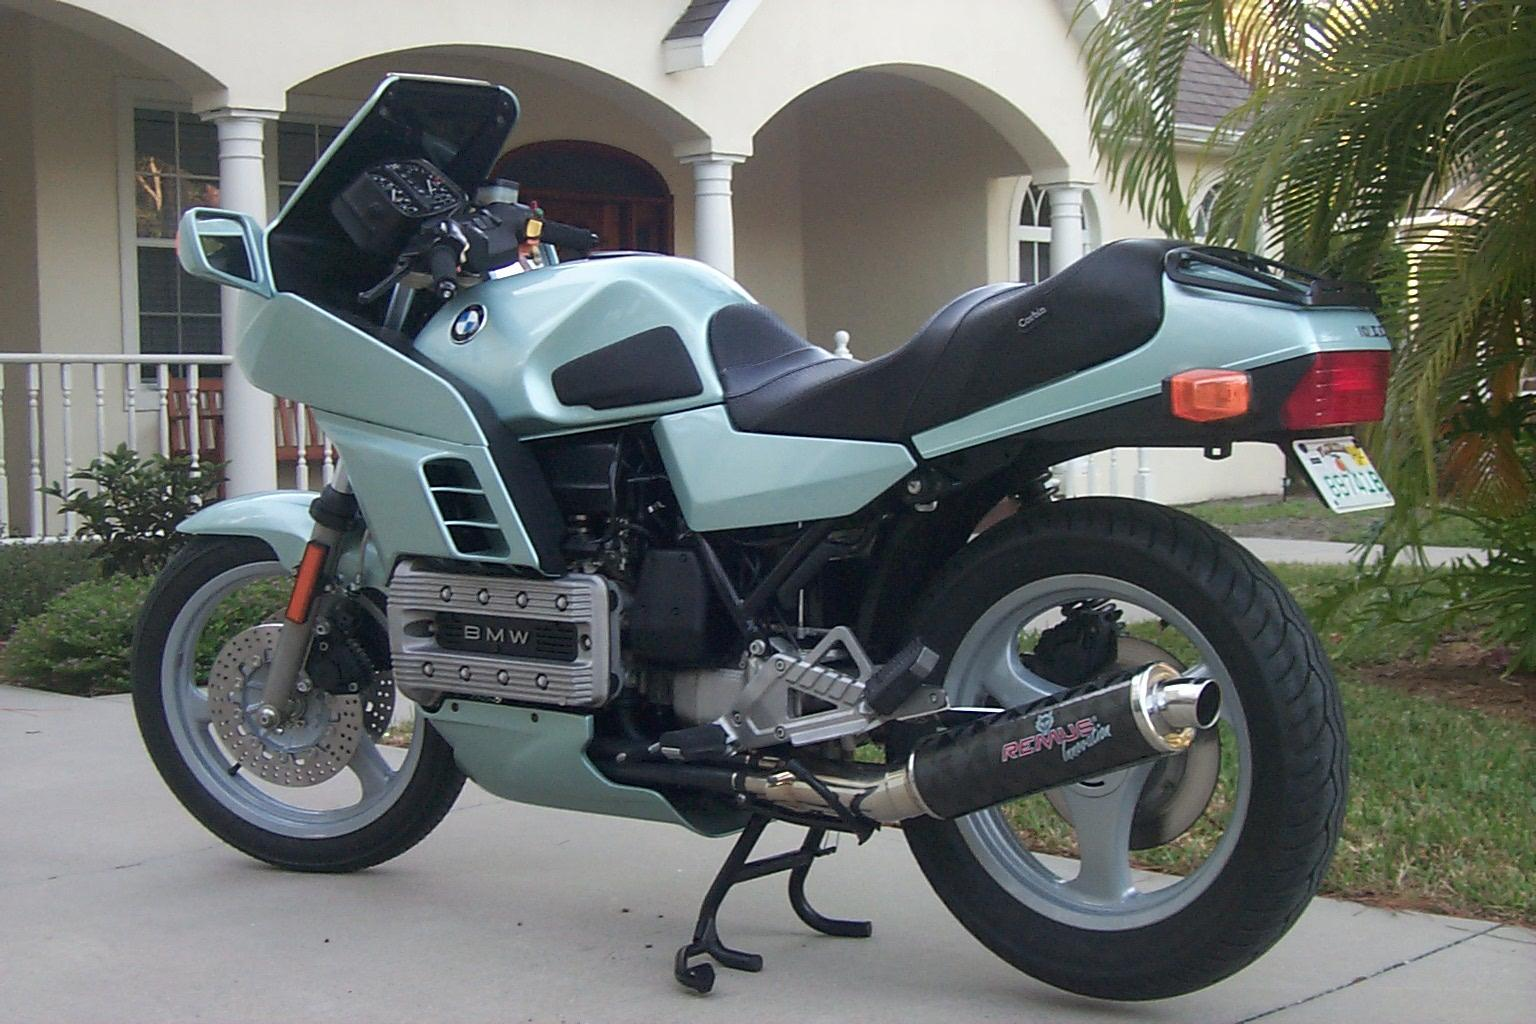 1984 Bmw K100 Pics Specs And Information 1985 Wiring Diagram Images 24140